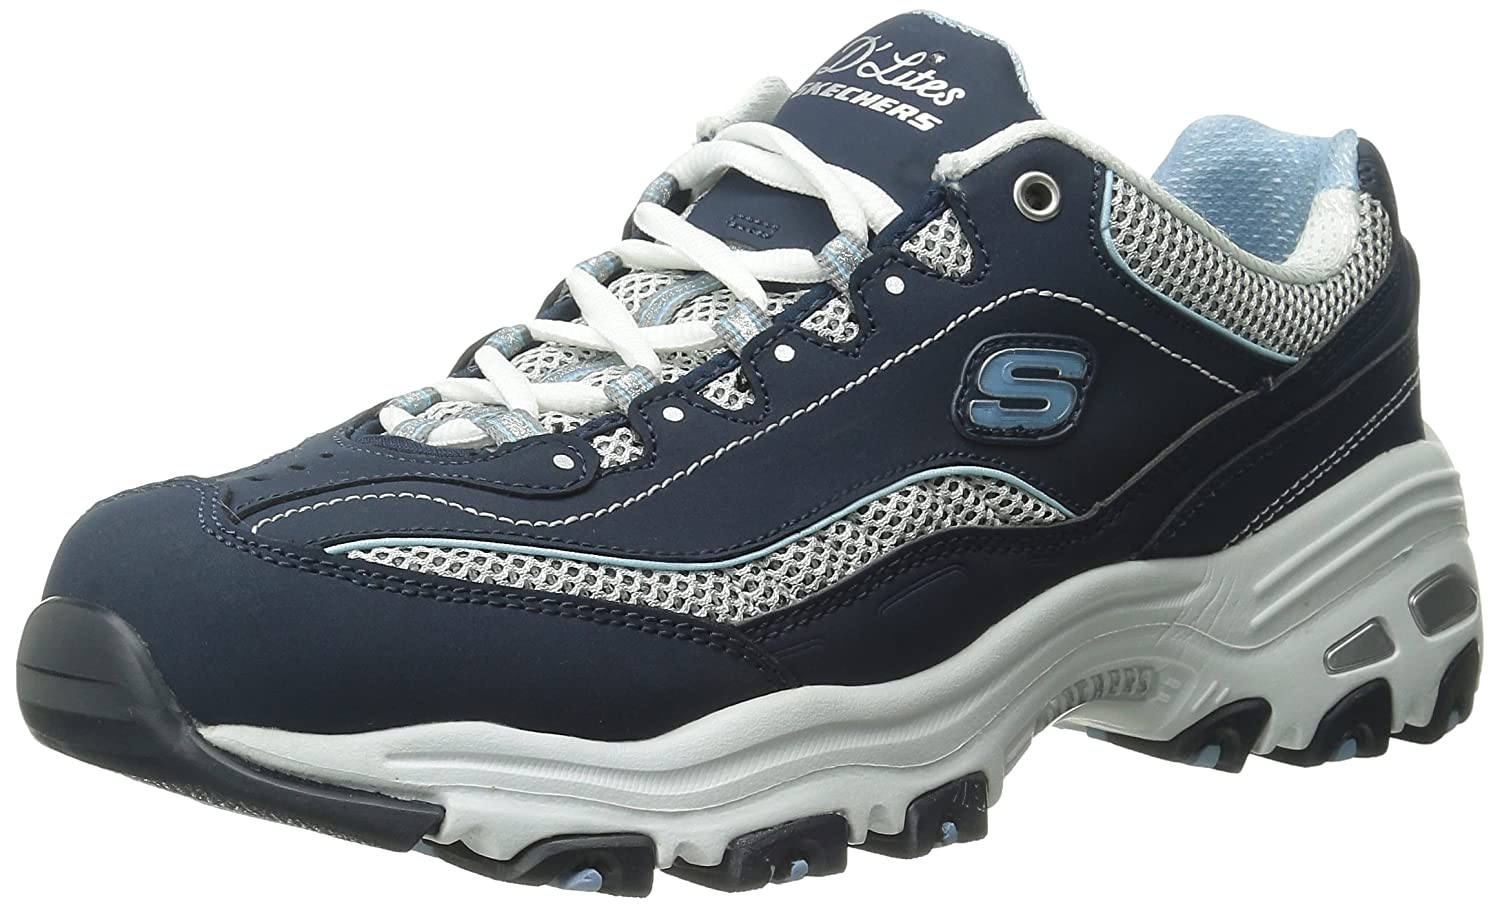 watch 02c11 ded0c Amazon.com   Skechers Women s D Lites Memory Foam Lace-up Sneaker   Fashion  Sneakers